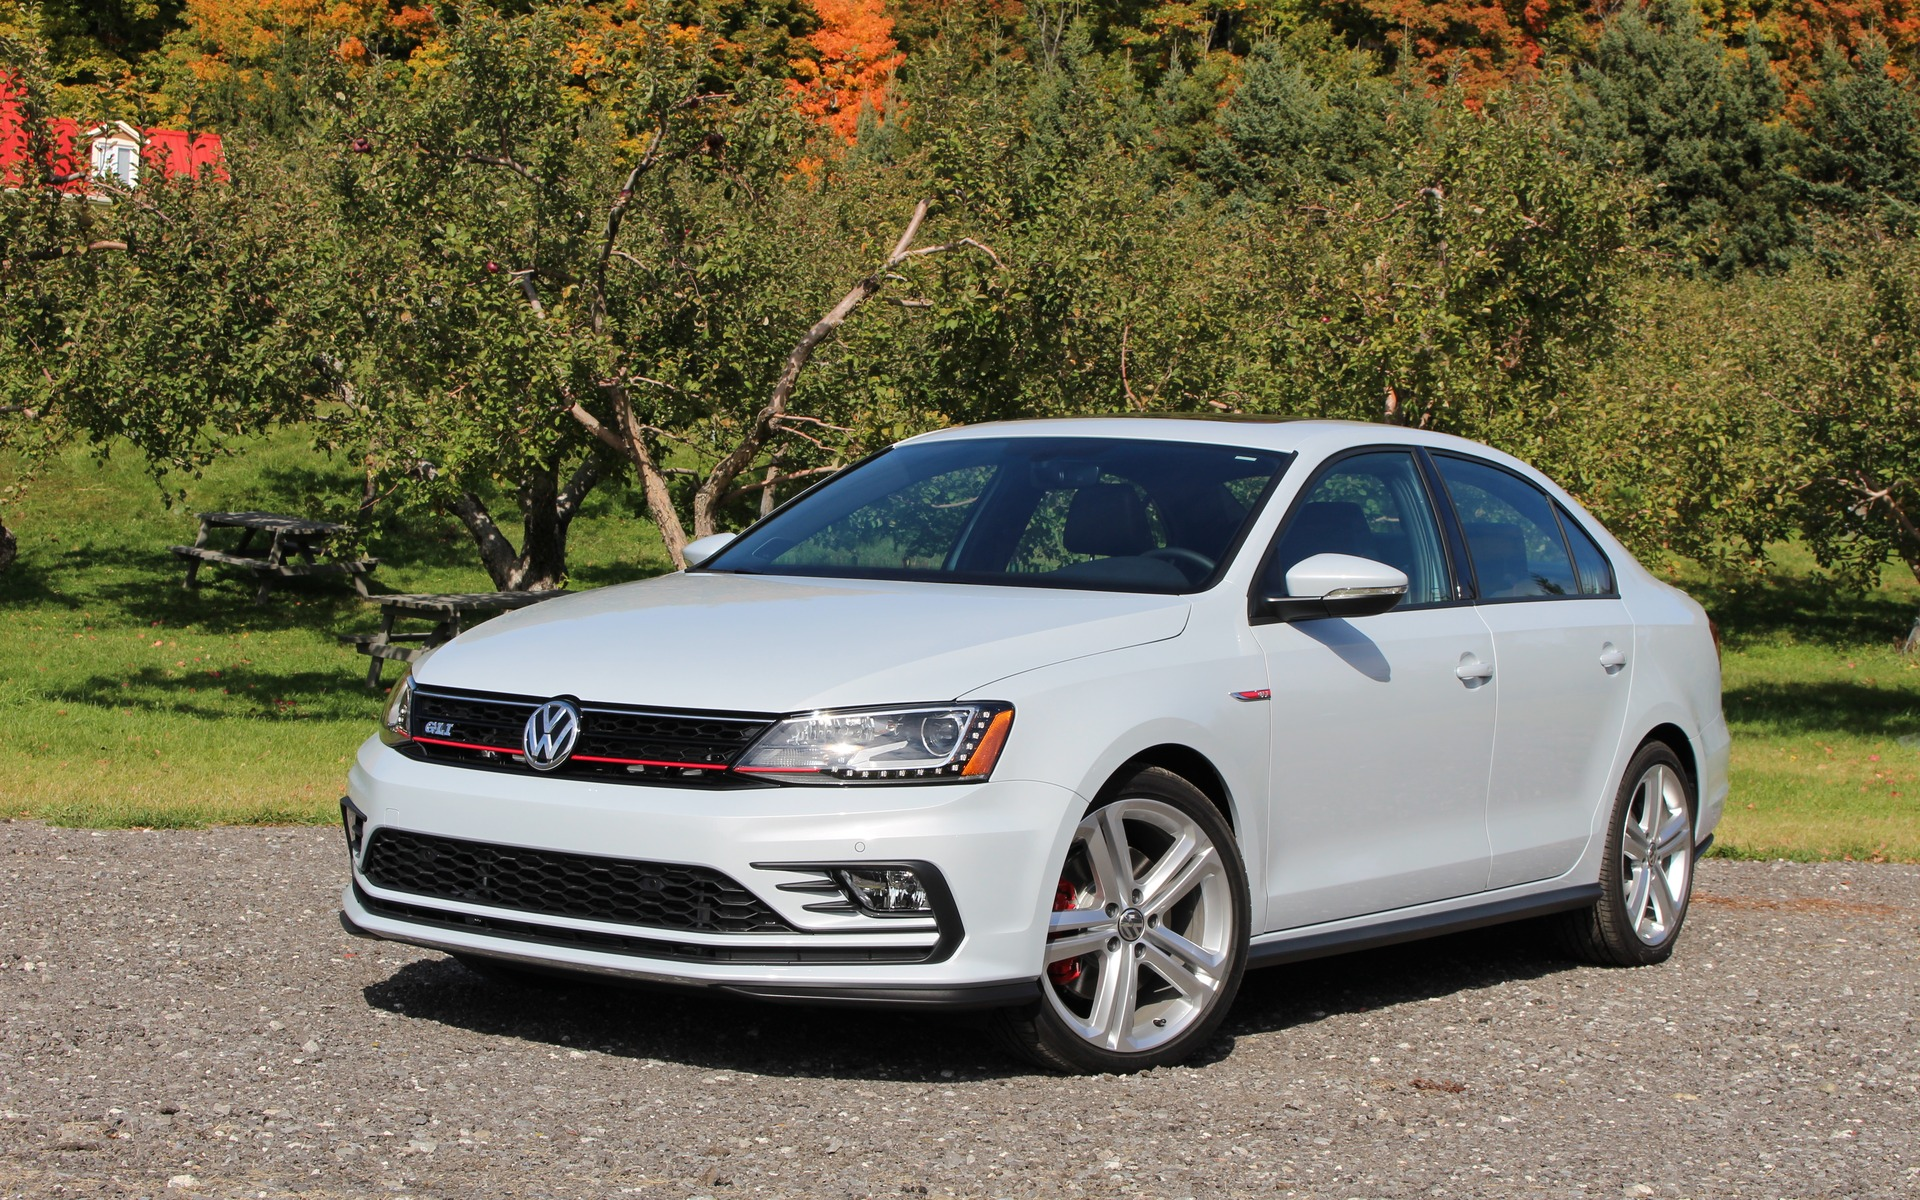 2017 Volkswagen Jetta GLI: No Longer the Bargain it Used to be - The Car Guide